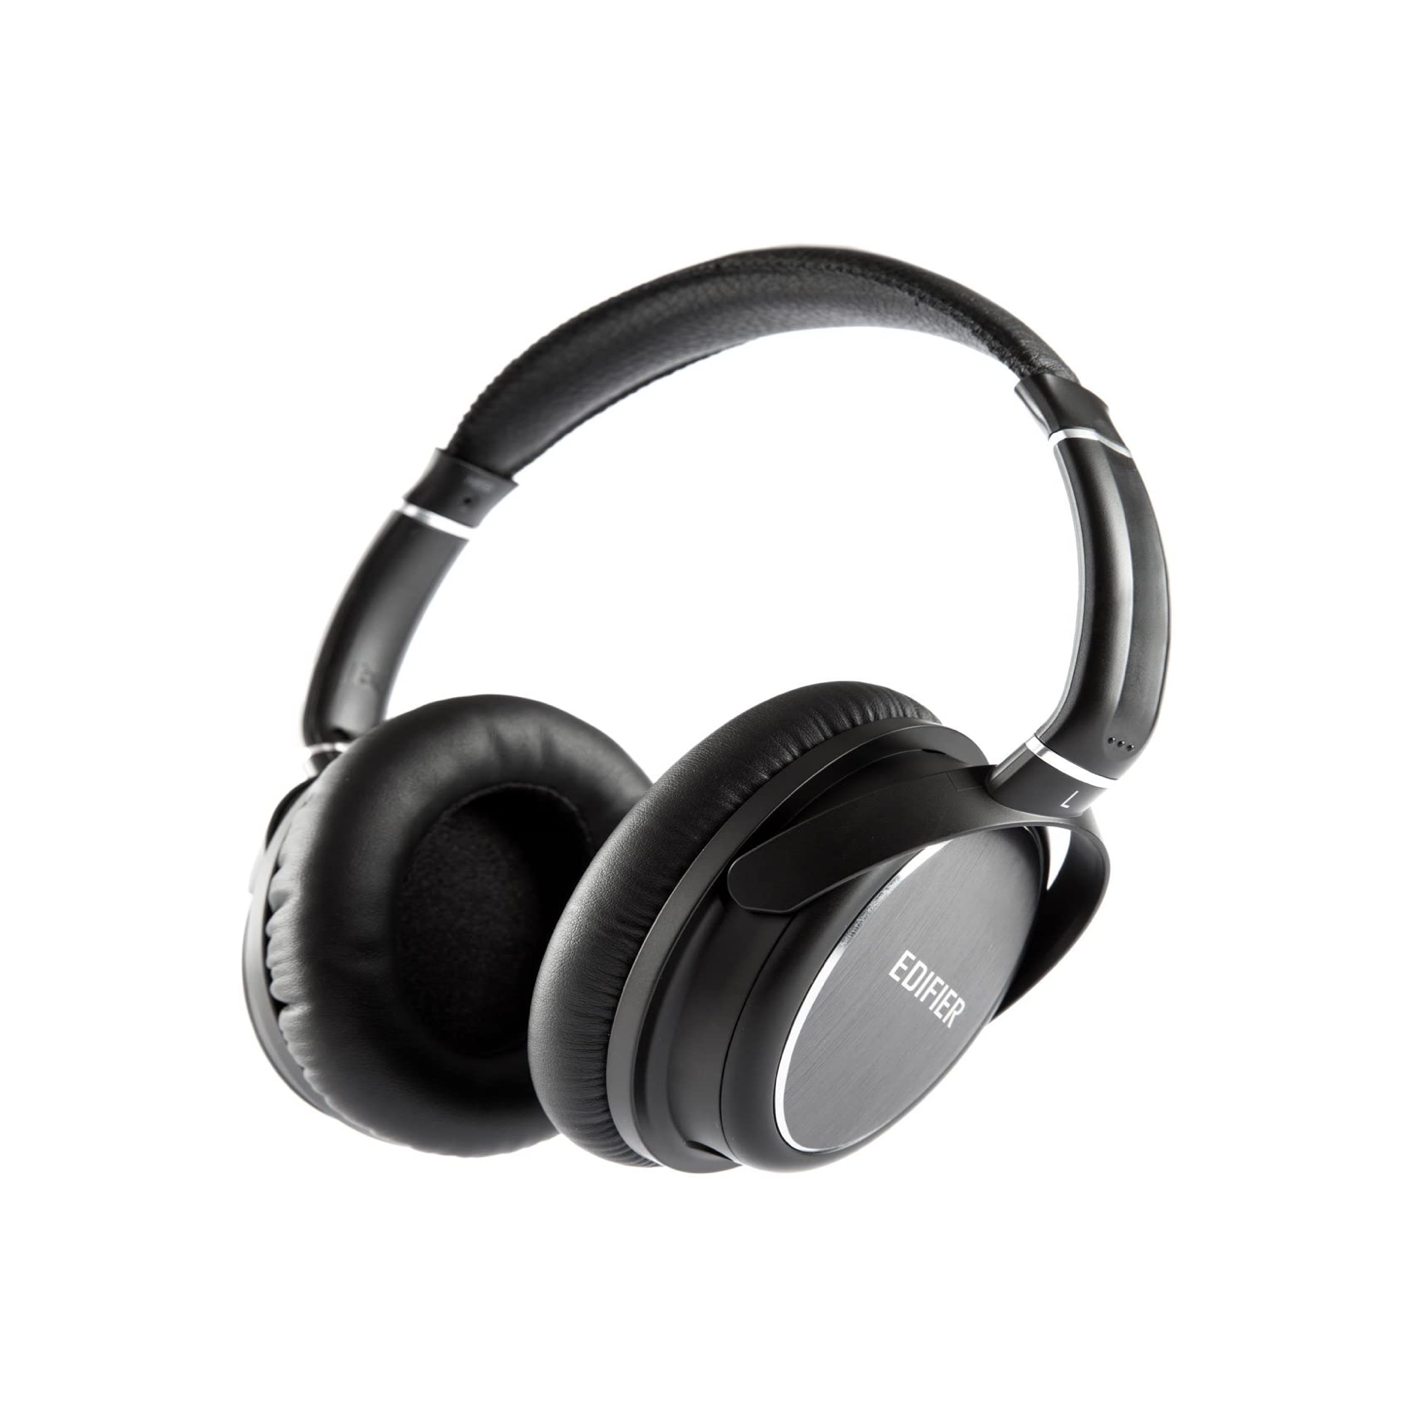 Edifier H850 Studio Headphones Black